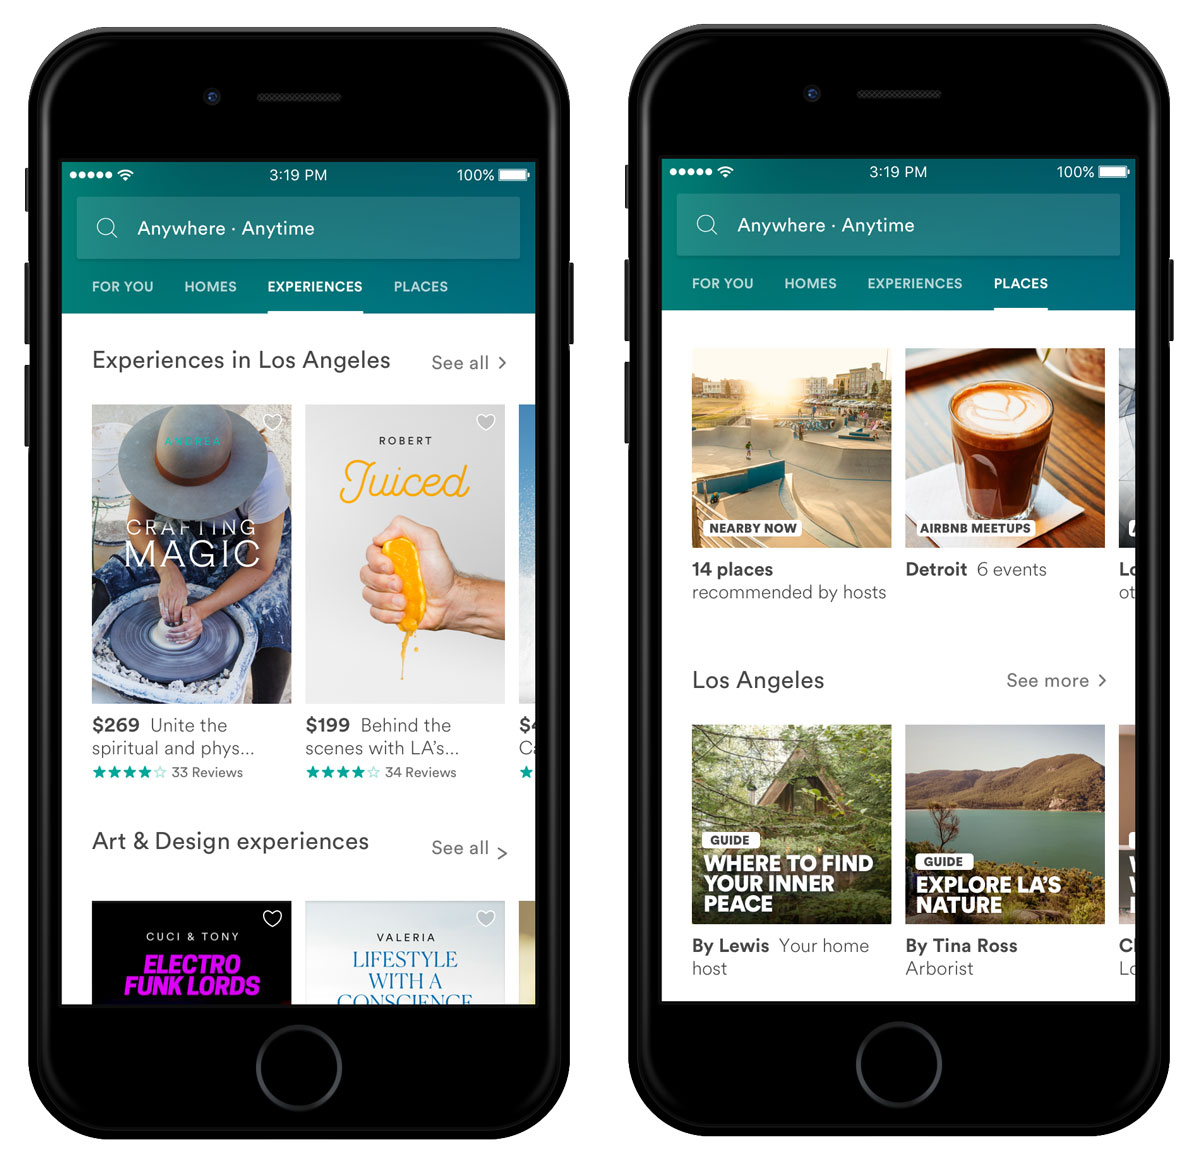 The Experiences offered give Airbnb users options for tours.